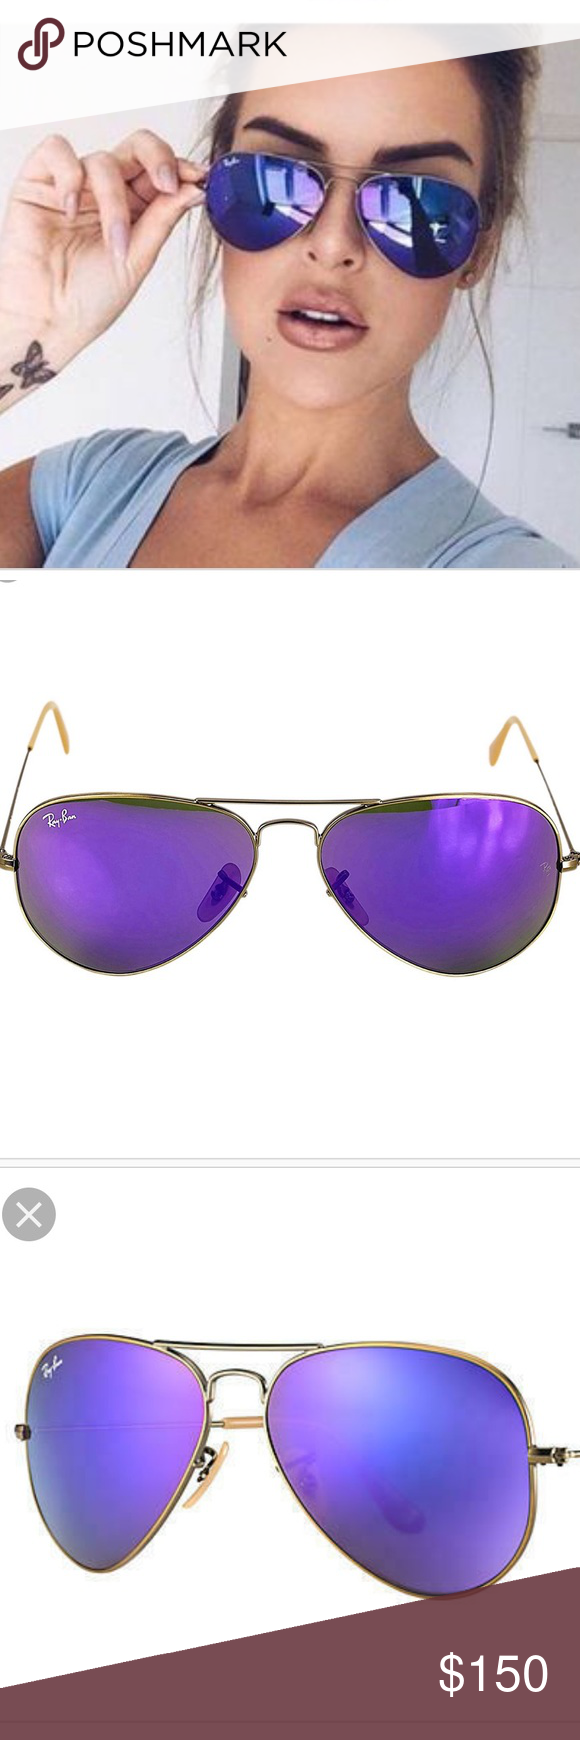 Ray-Ban Lightweight Clubmaster Sunglasses featuring